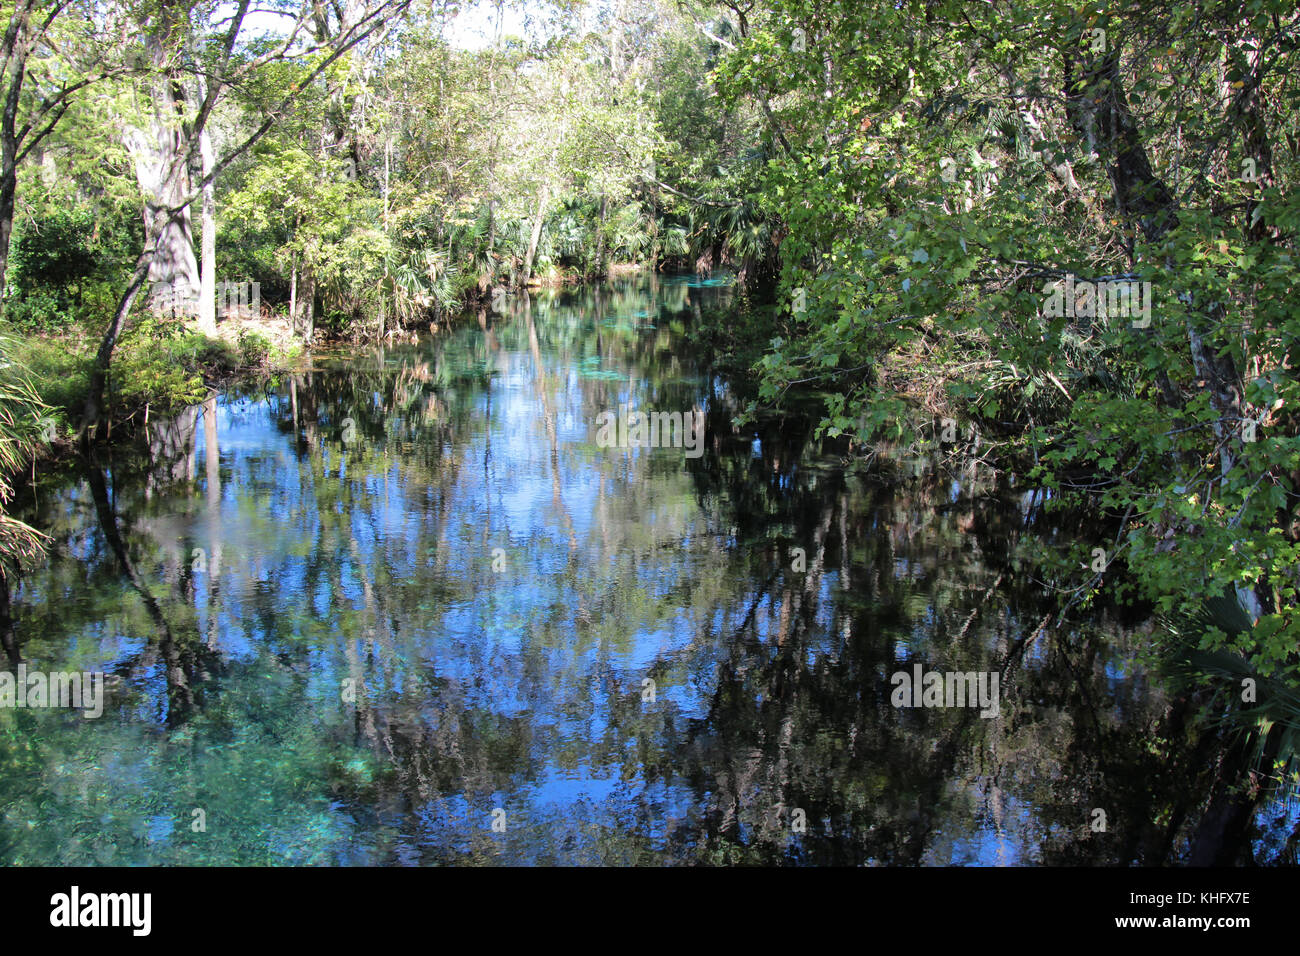 Dreamy landscape of a river with water reflections of trees at Silver Springs State Park Florida - Stock Image